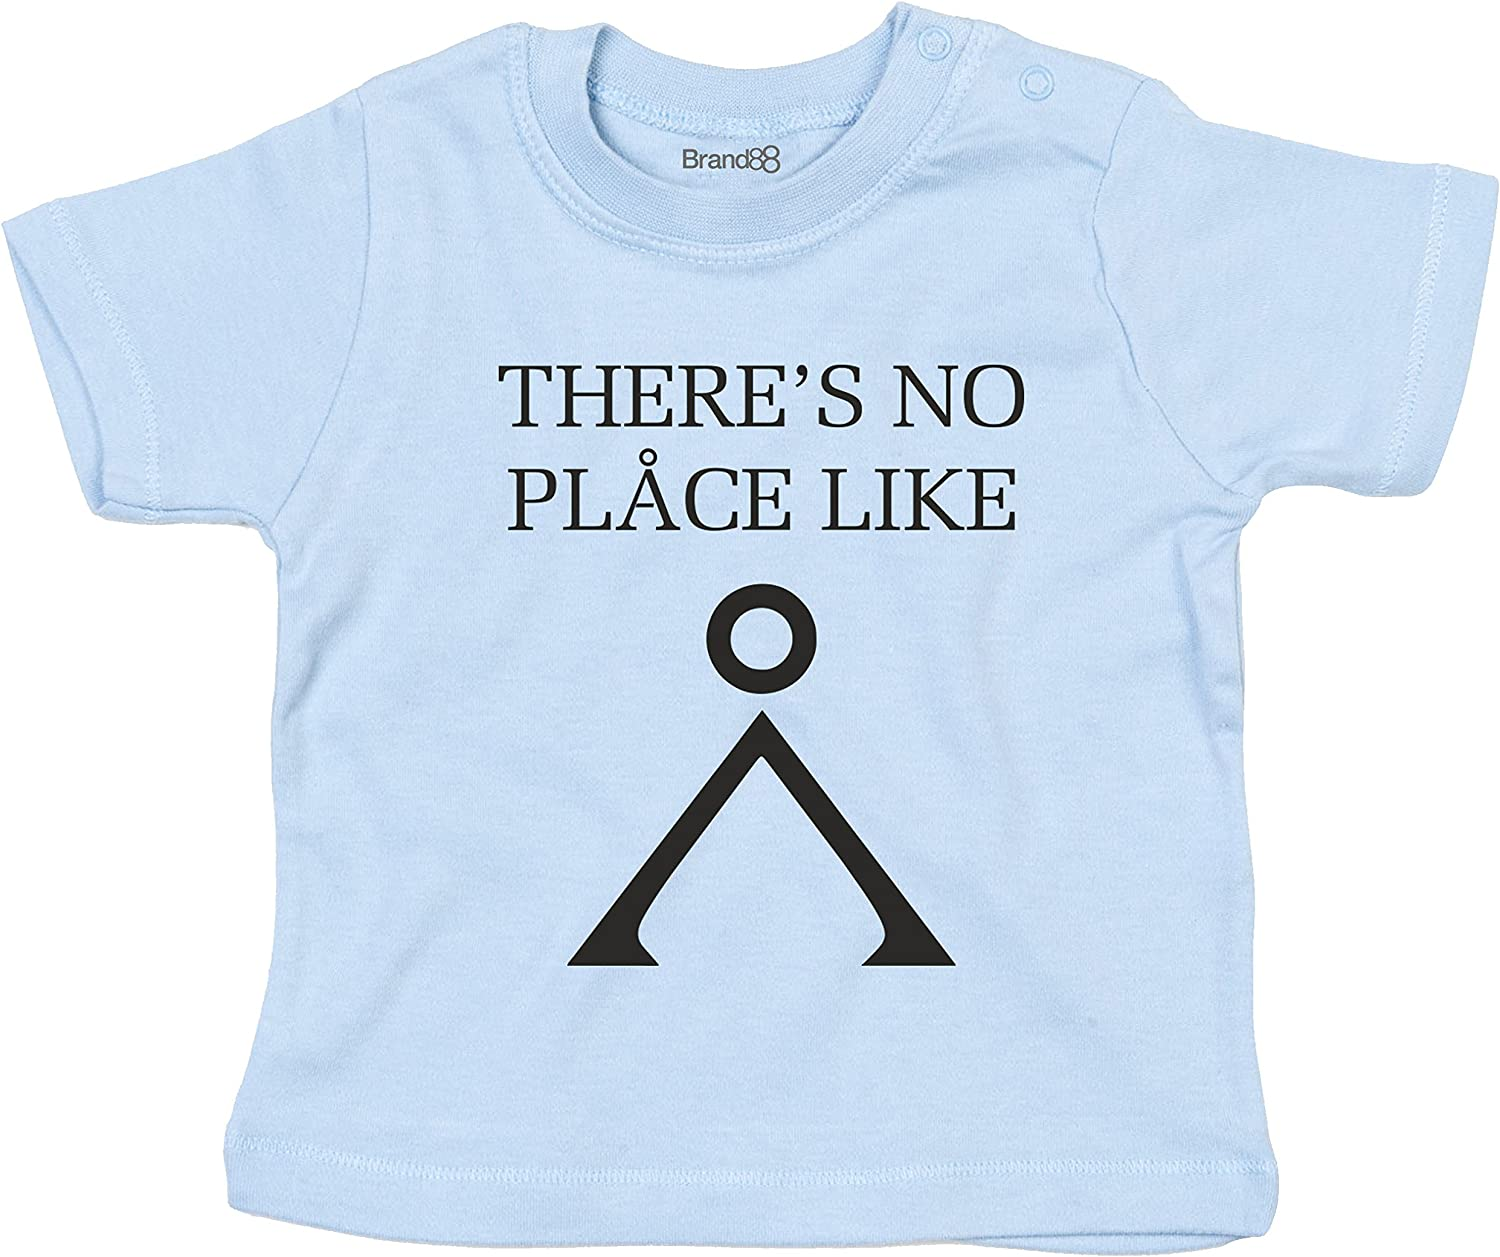 Baby T-Shirt Brand88 Theres No Place Like